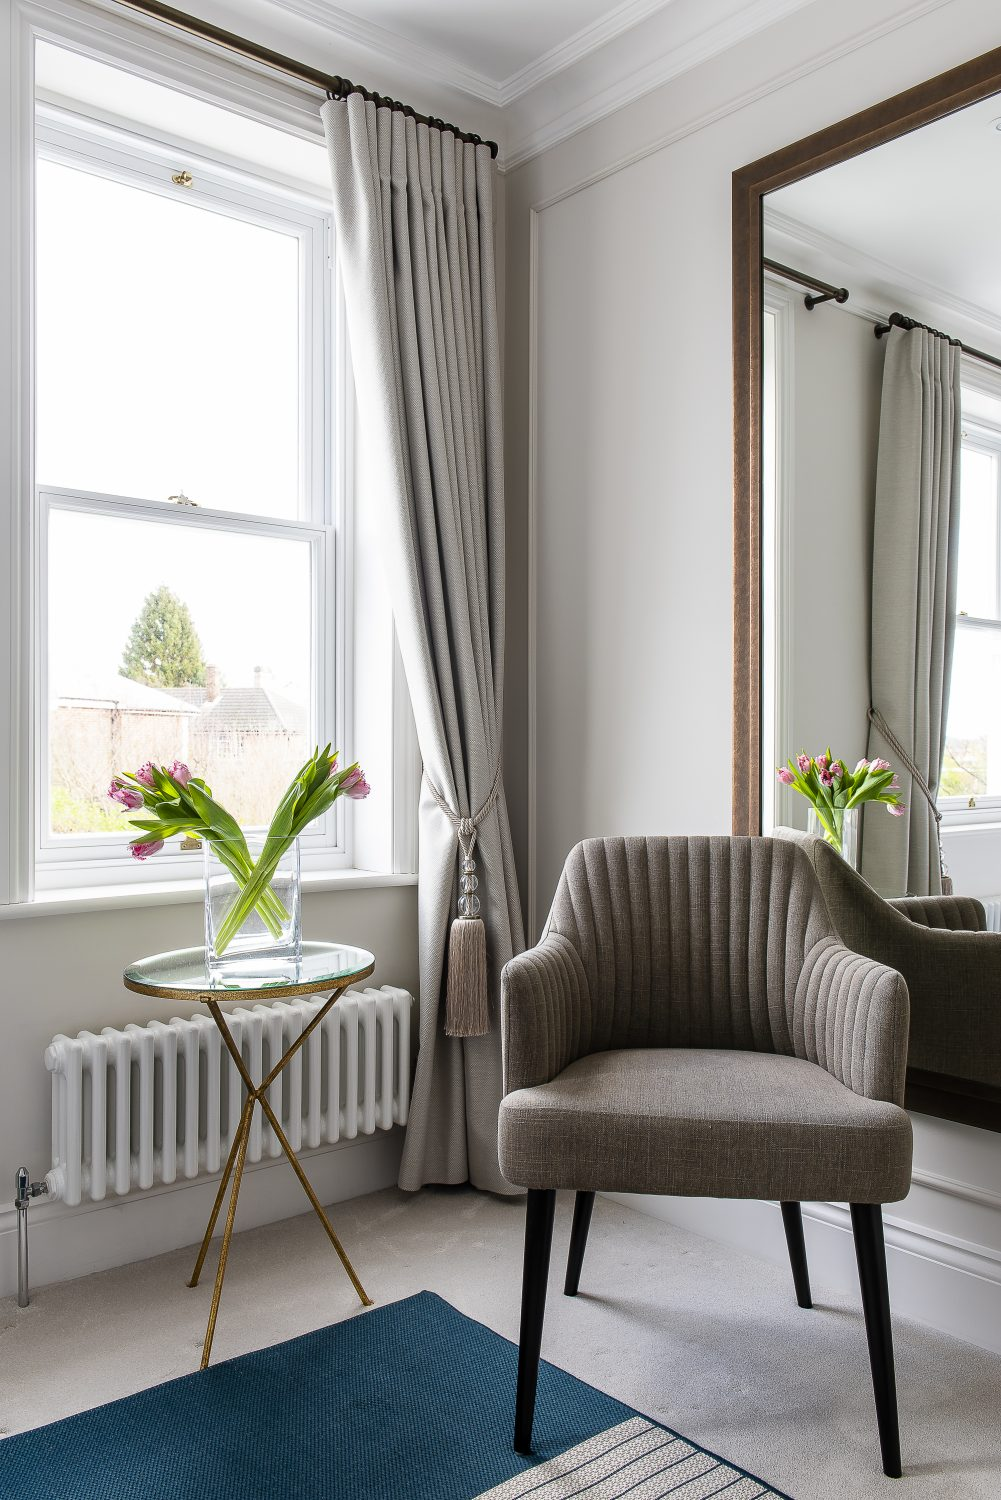 The heading on the curtains – the same colour as the walls – creates the calm, continuous atmosphere Zoe likes